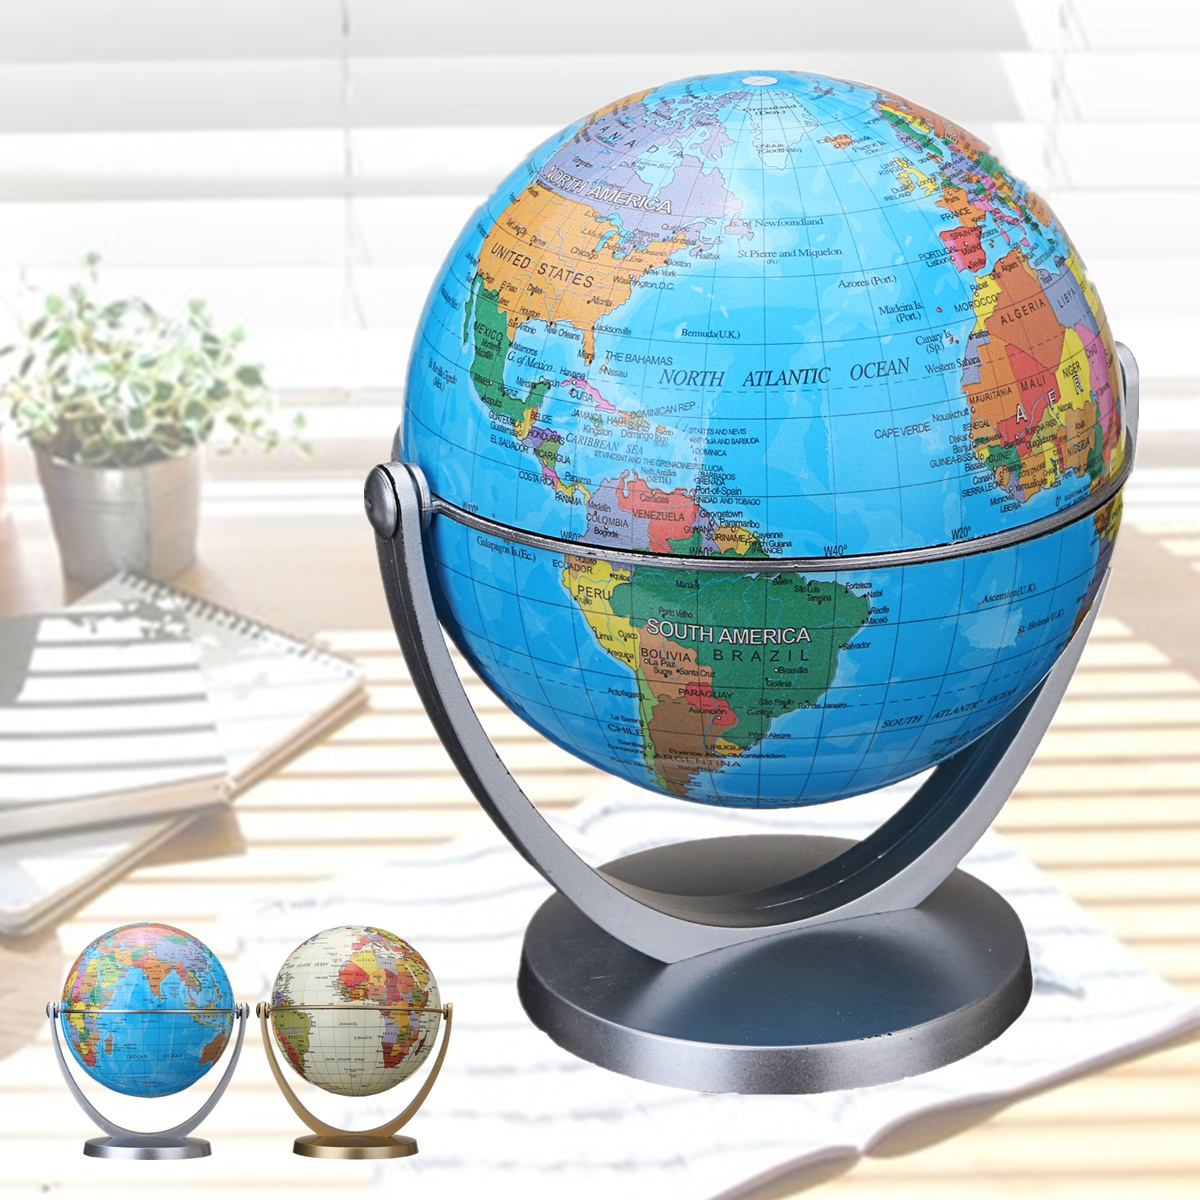 360 dregee rotating globes earth ocean globe world geography map 1 x world globe more detailed photos gumiabroncs Image collections